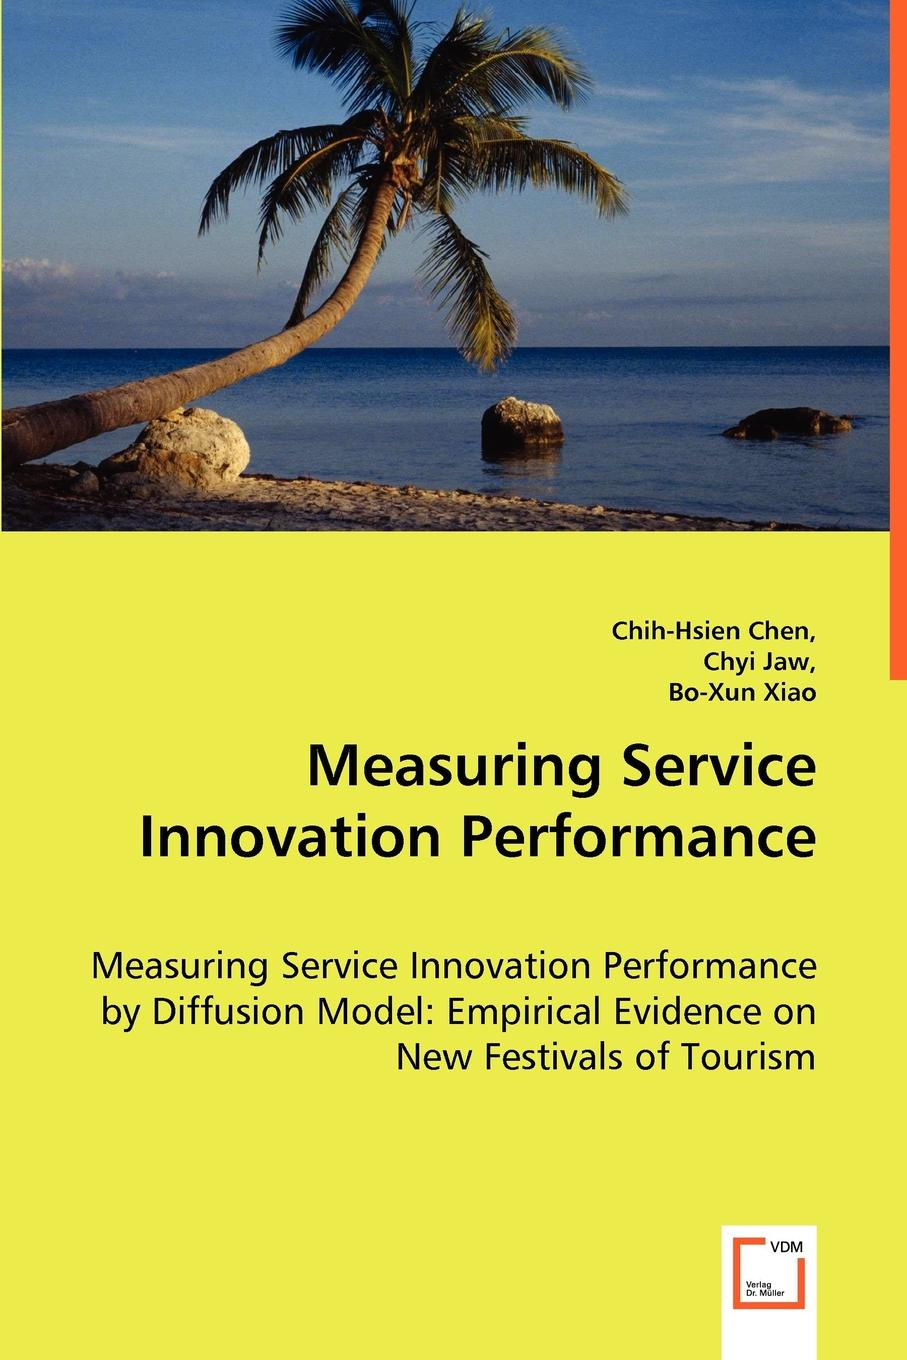 Chih-Hsien Chen, Chyi Jaw, Bo-Xun Xiao Measuring Service Innovation Performance - Measuring Service Innovation Performance by Diffusion Model. Empirical Evidence on New Festivals of Tourism цены